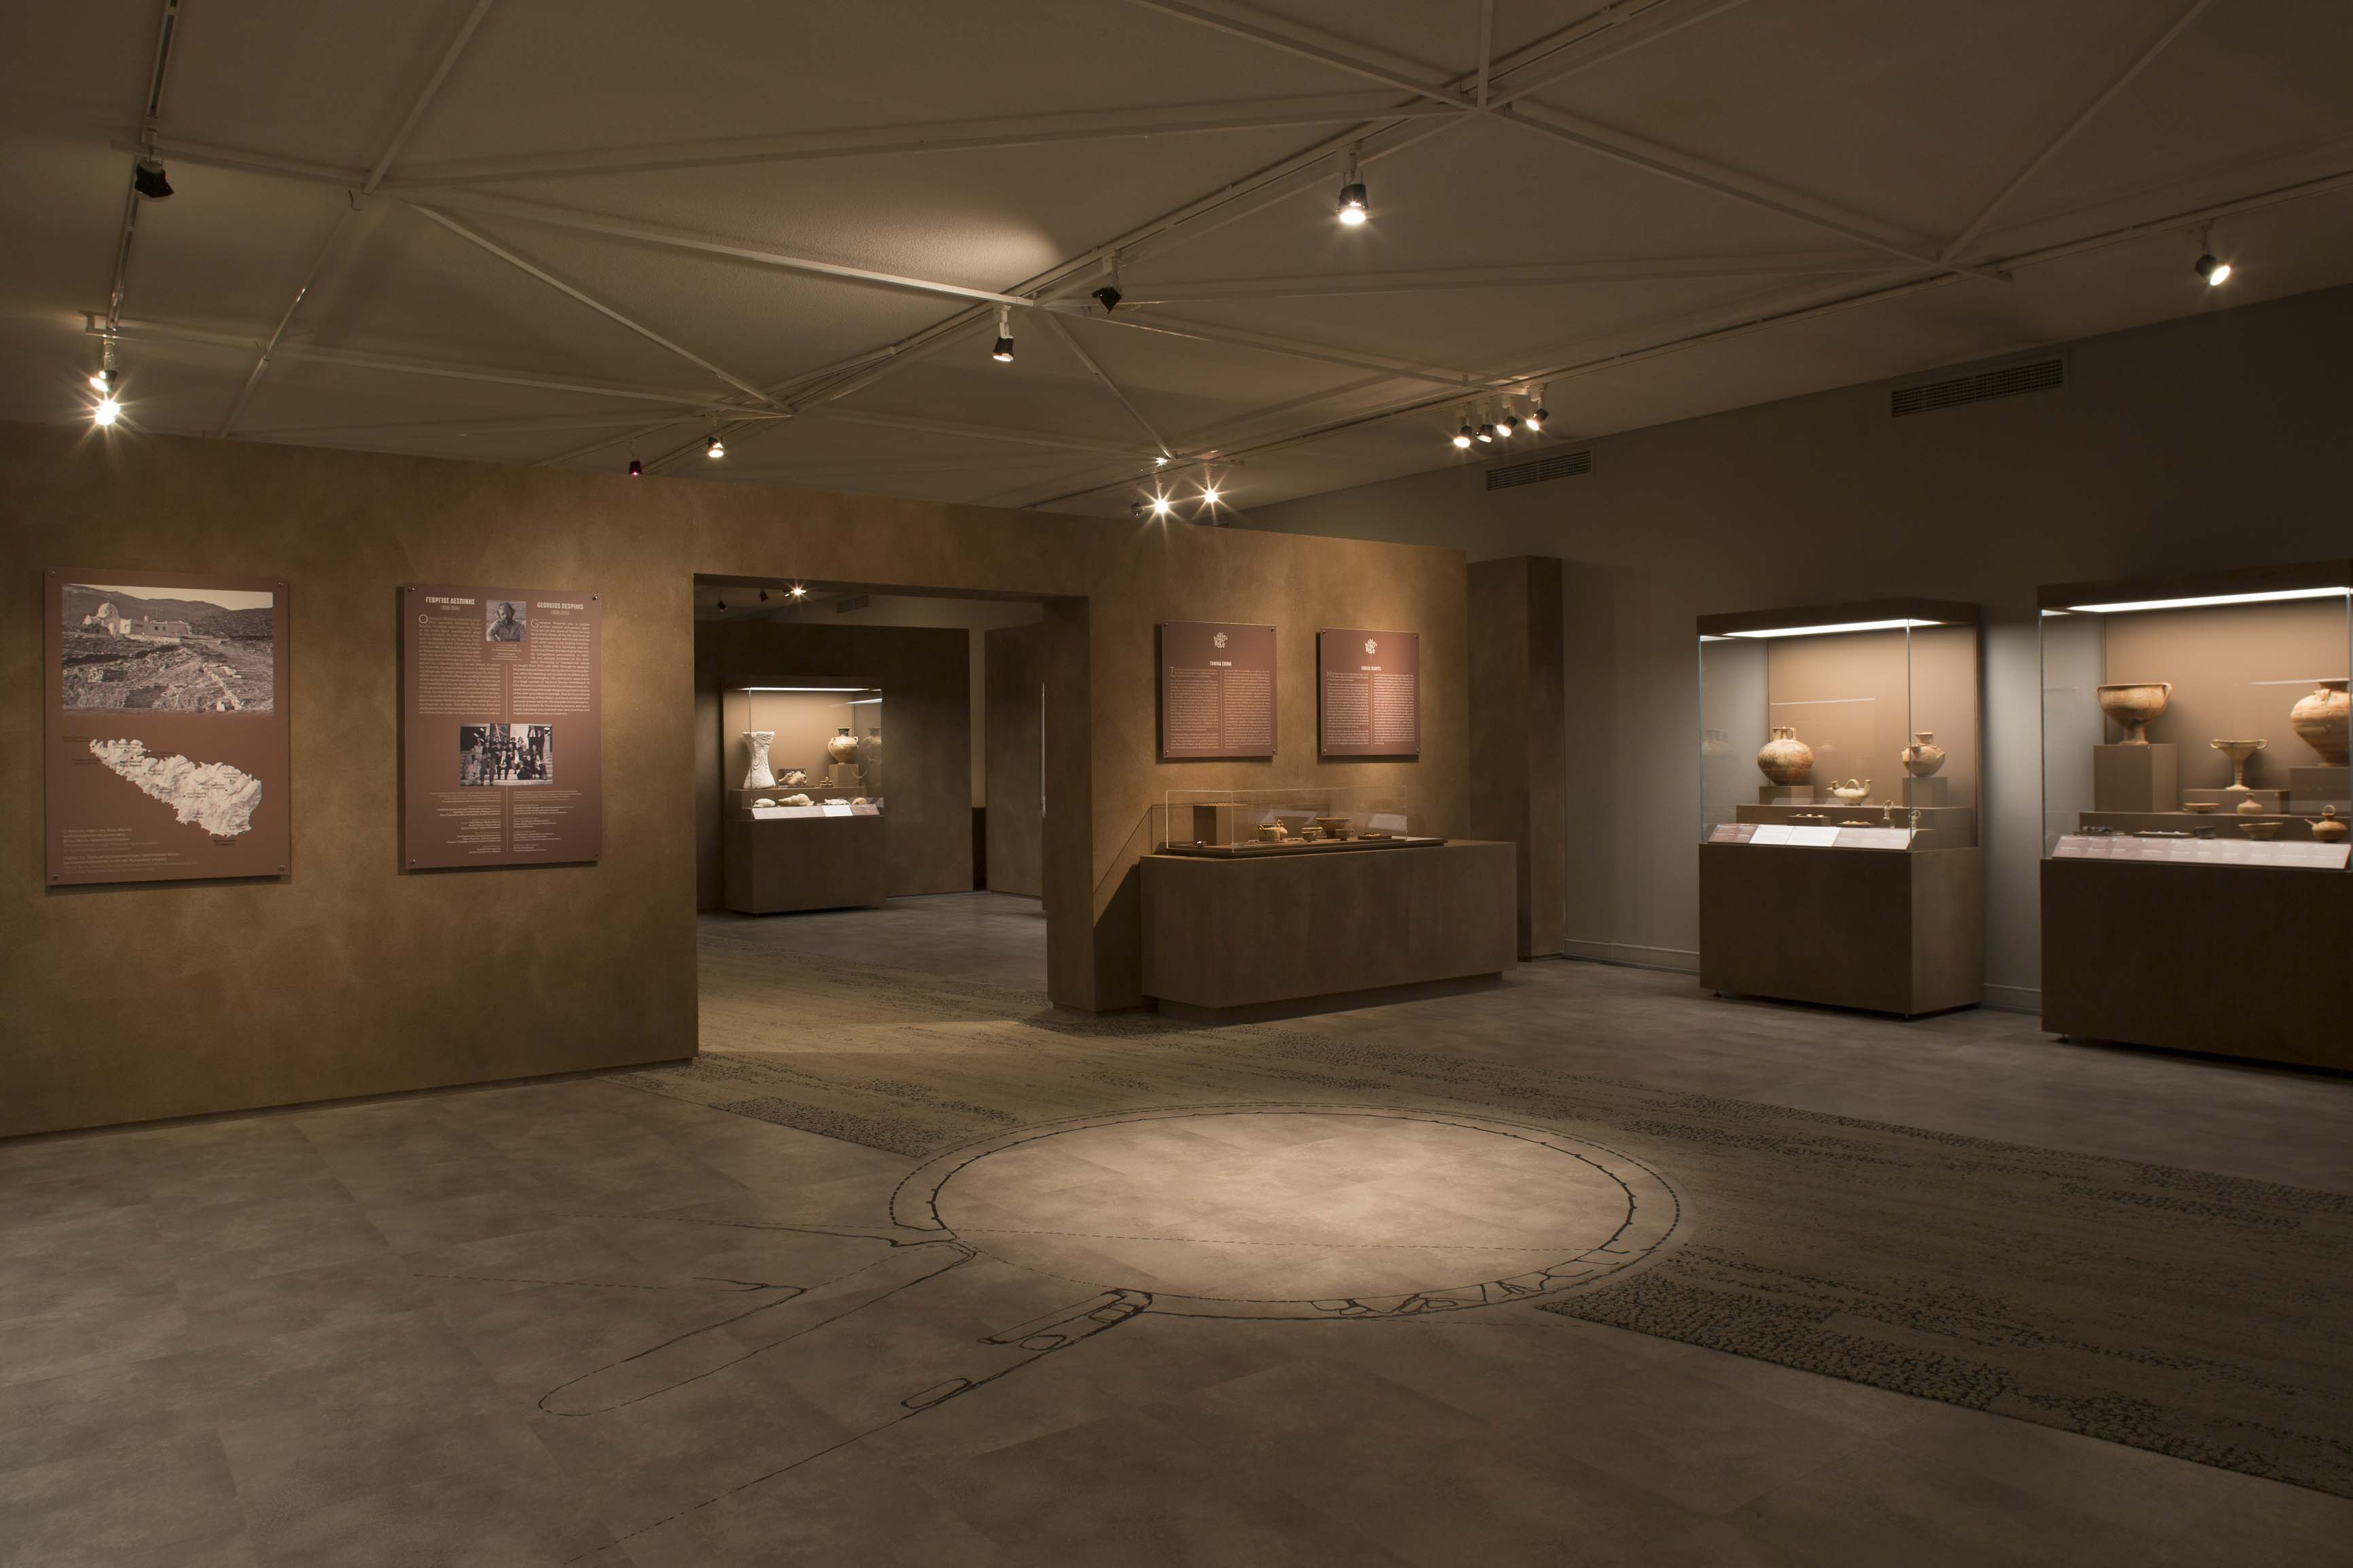 """From Homer's world: Tenos and the Cyclades in the Mycenaean Age"""" Exhibition at the Benaki Museum, Athens"""